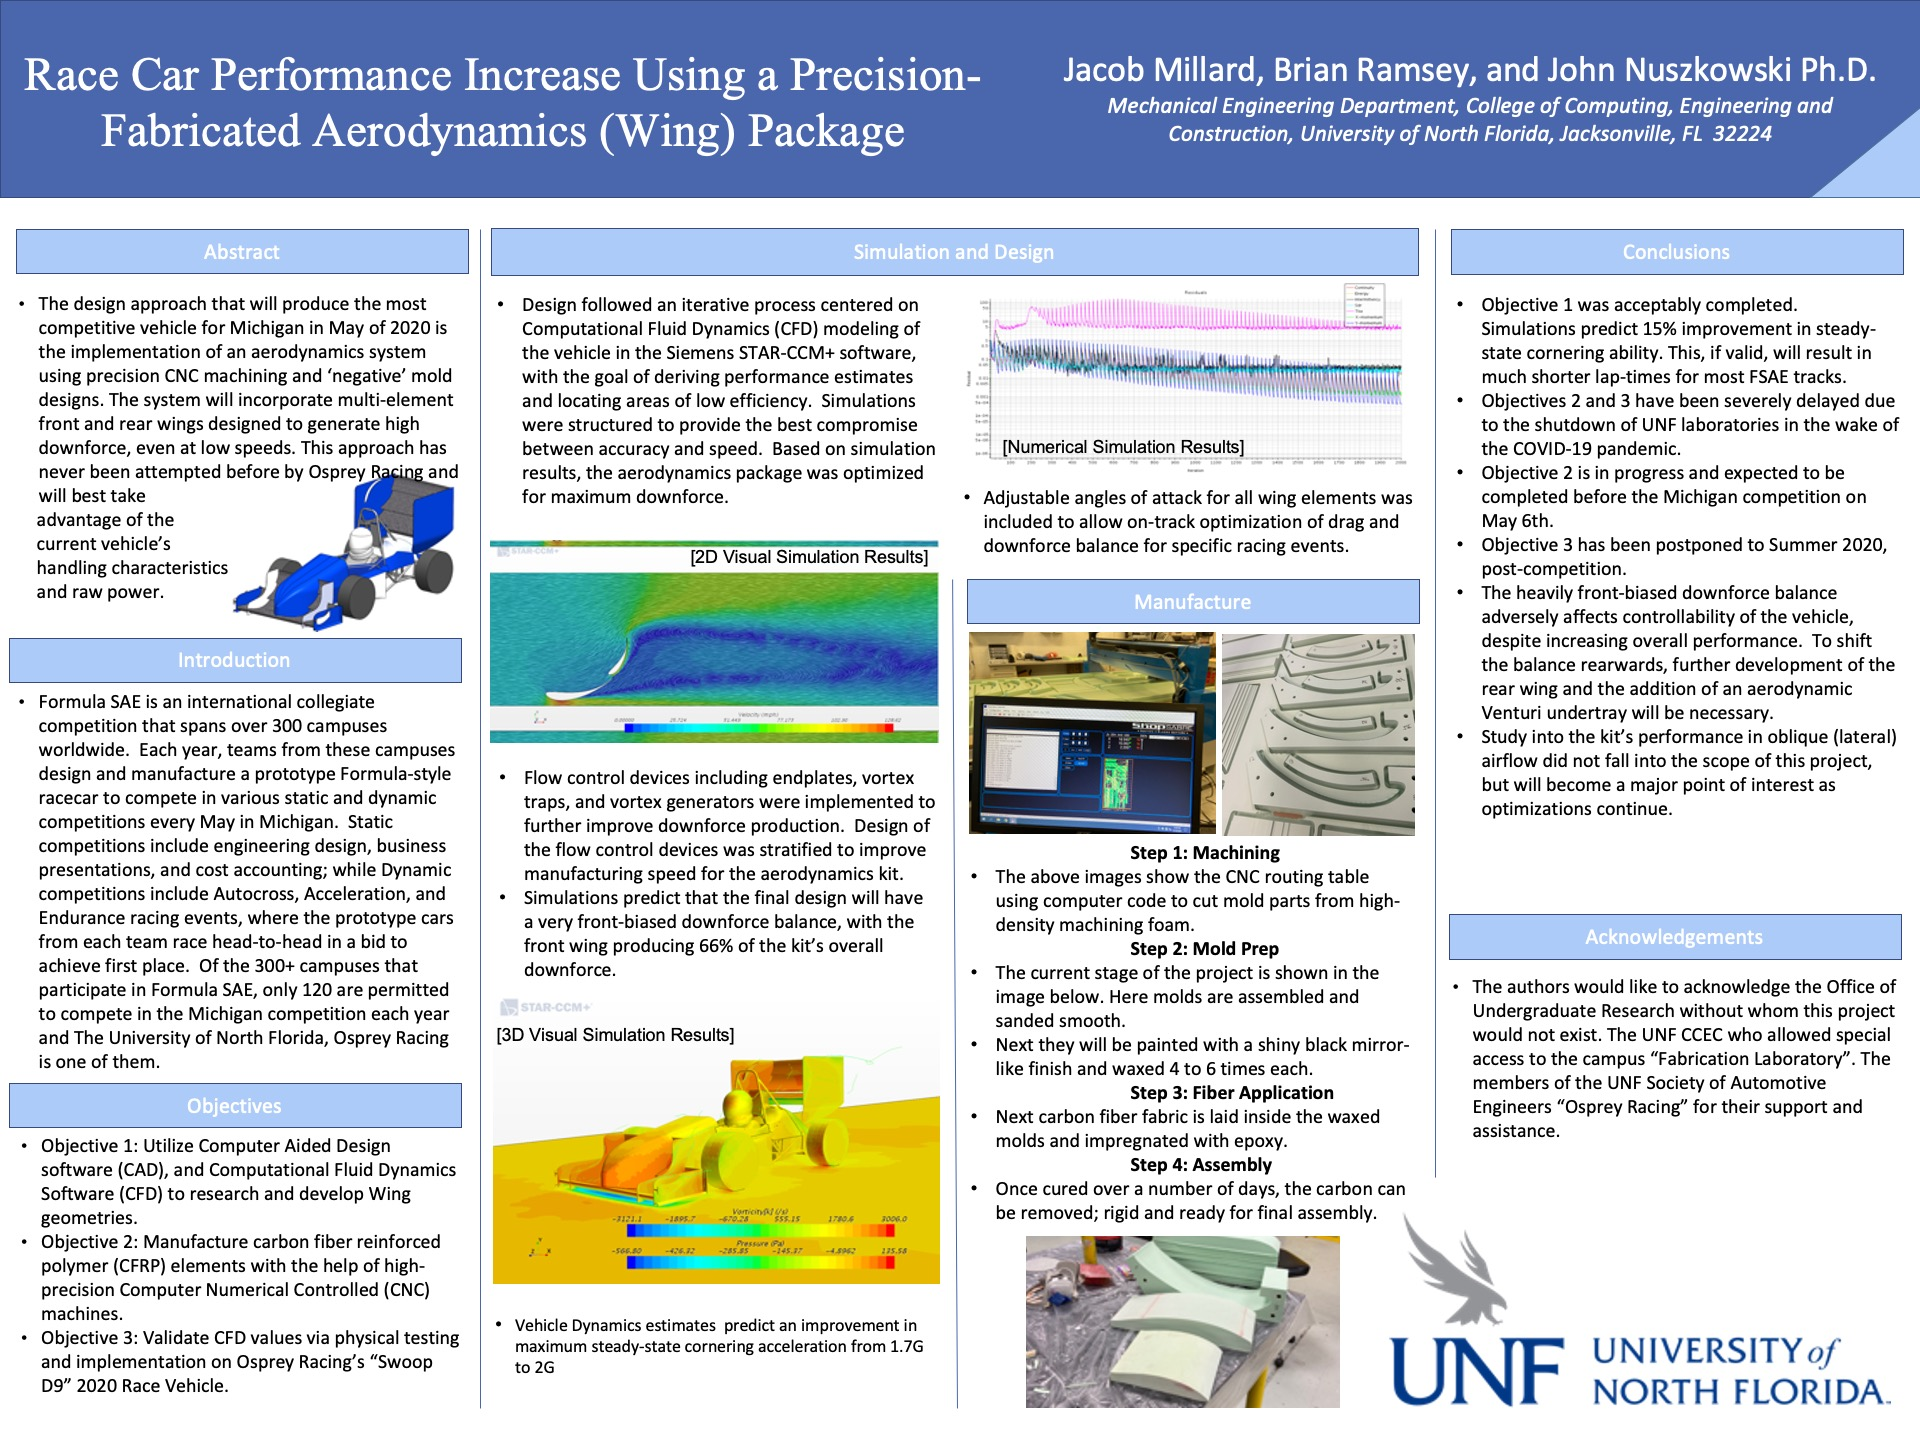 Race Car Performance Increase Using a Precision-Fabricated Aerodynamics (Wing) Package poster